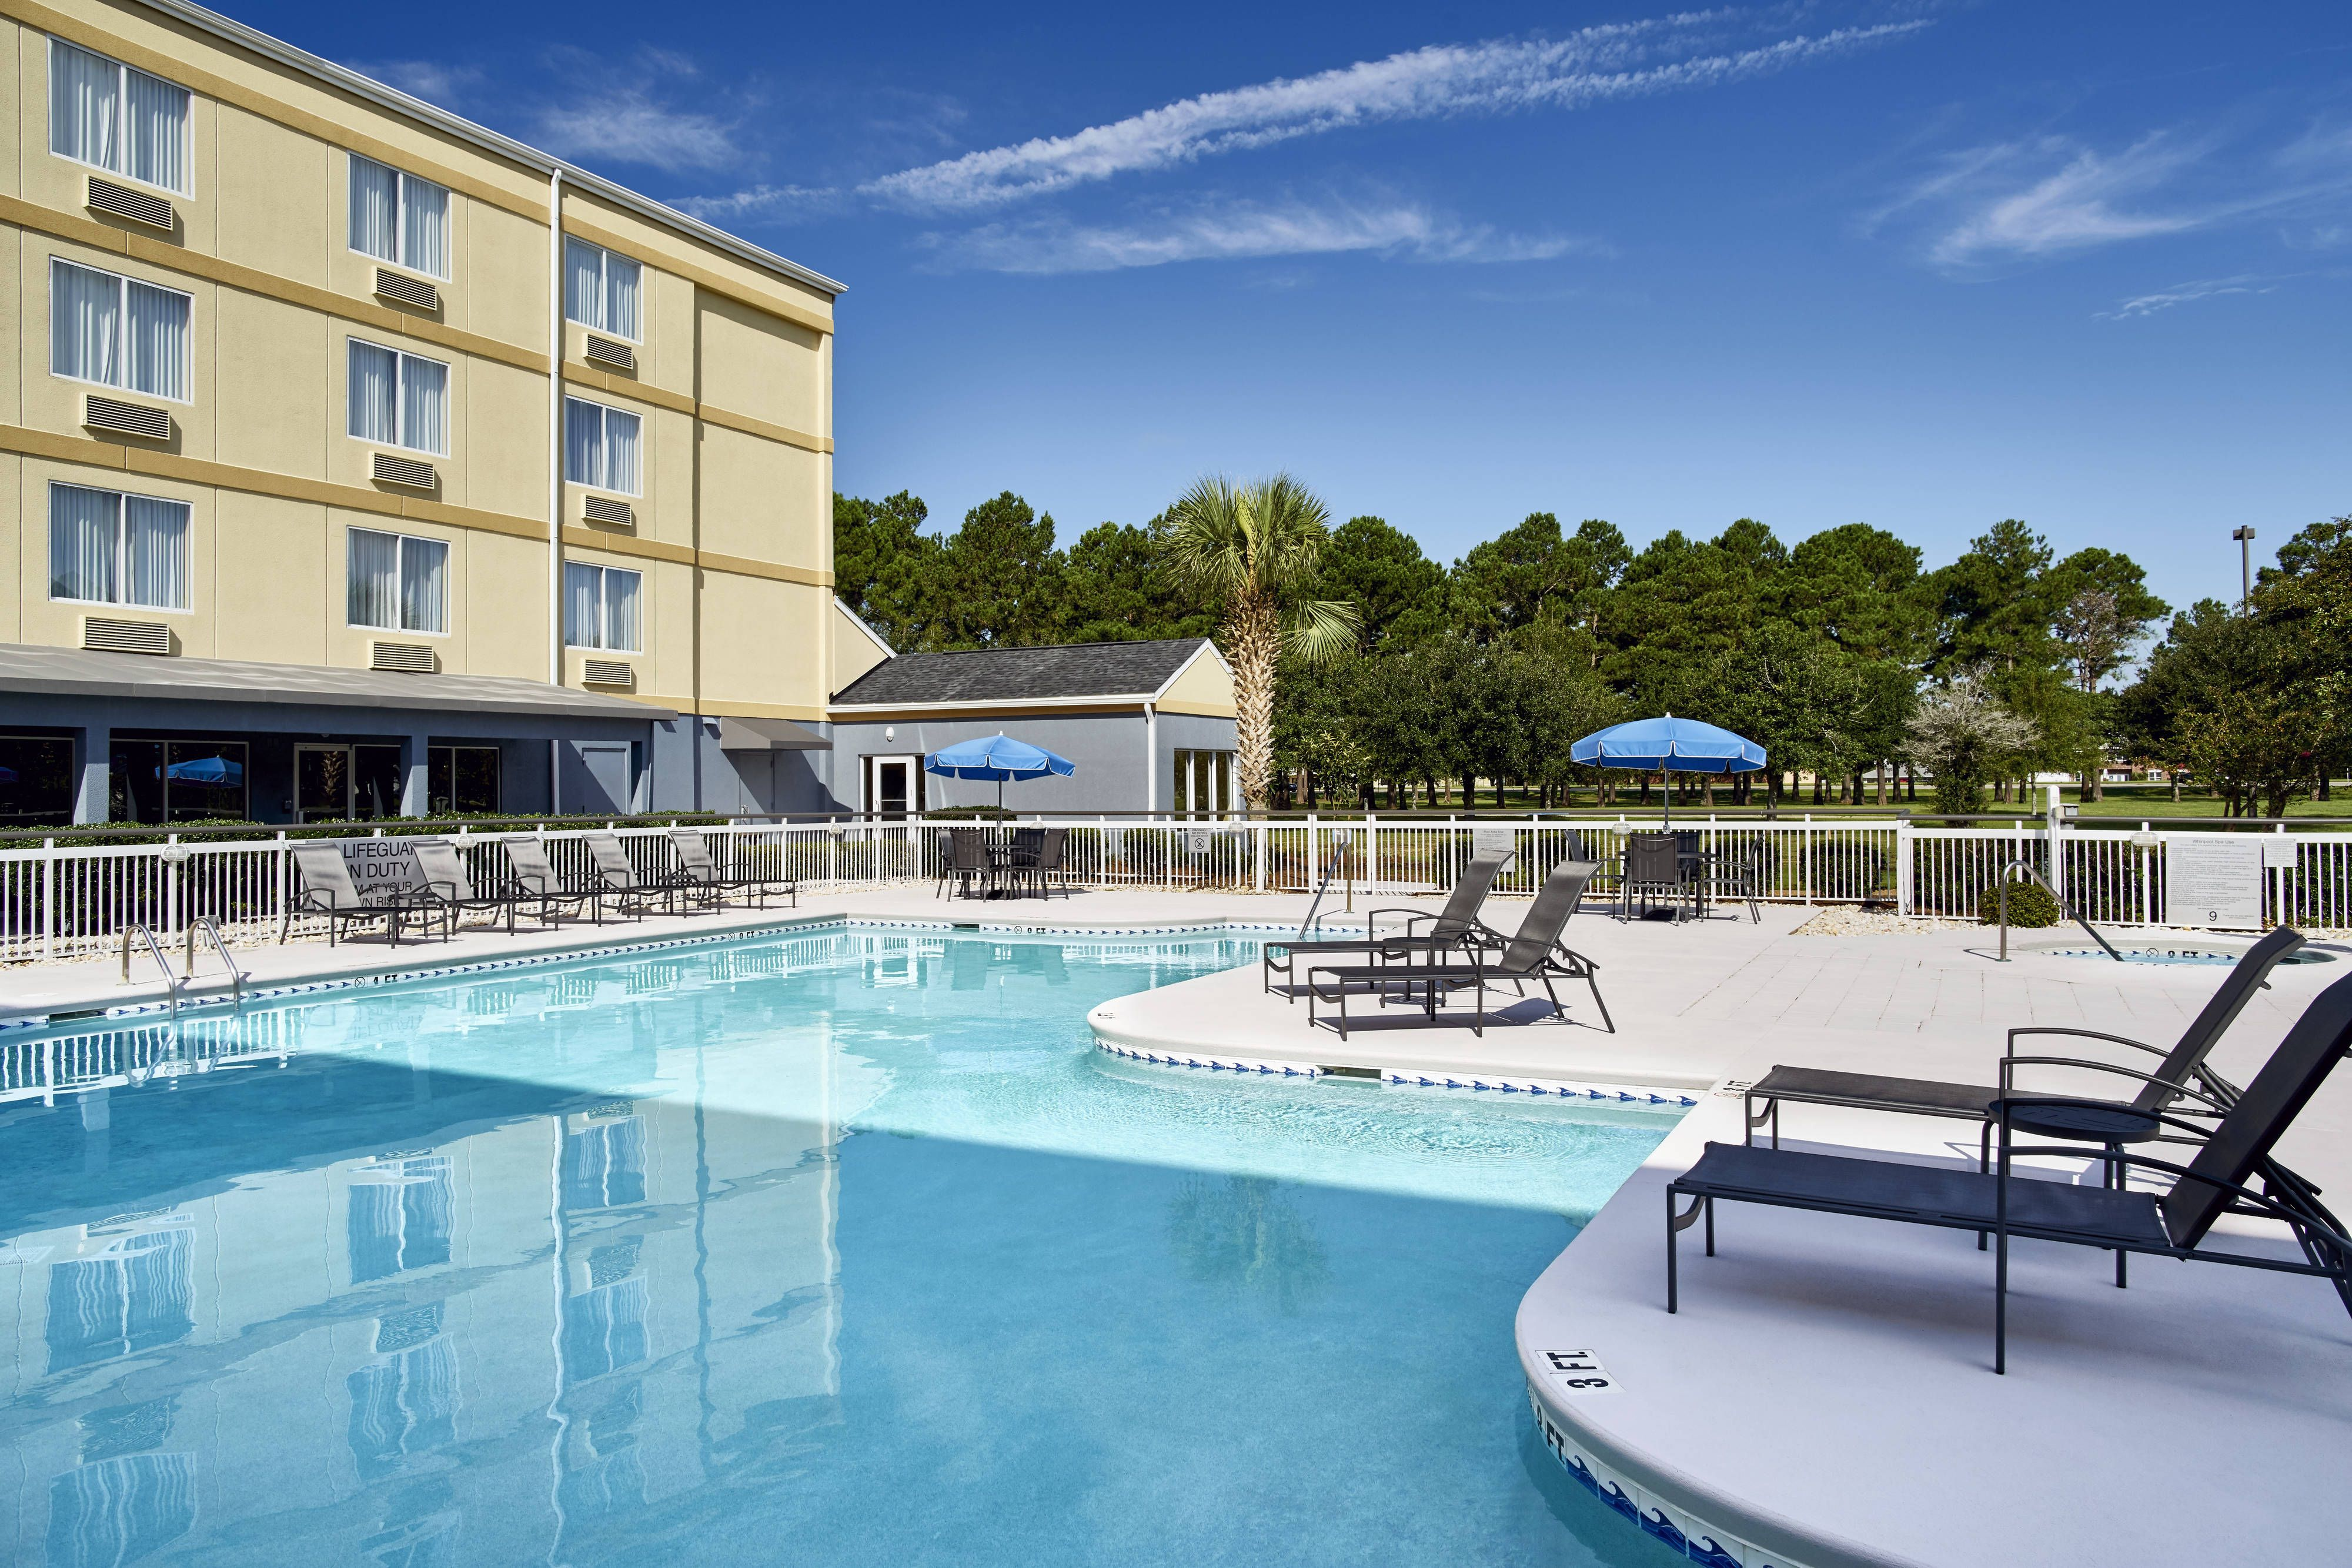 Fairfield Inn Myrtle Beach Broadway At The Beach Outdoor Pool And